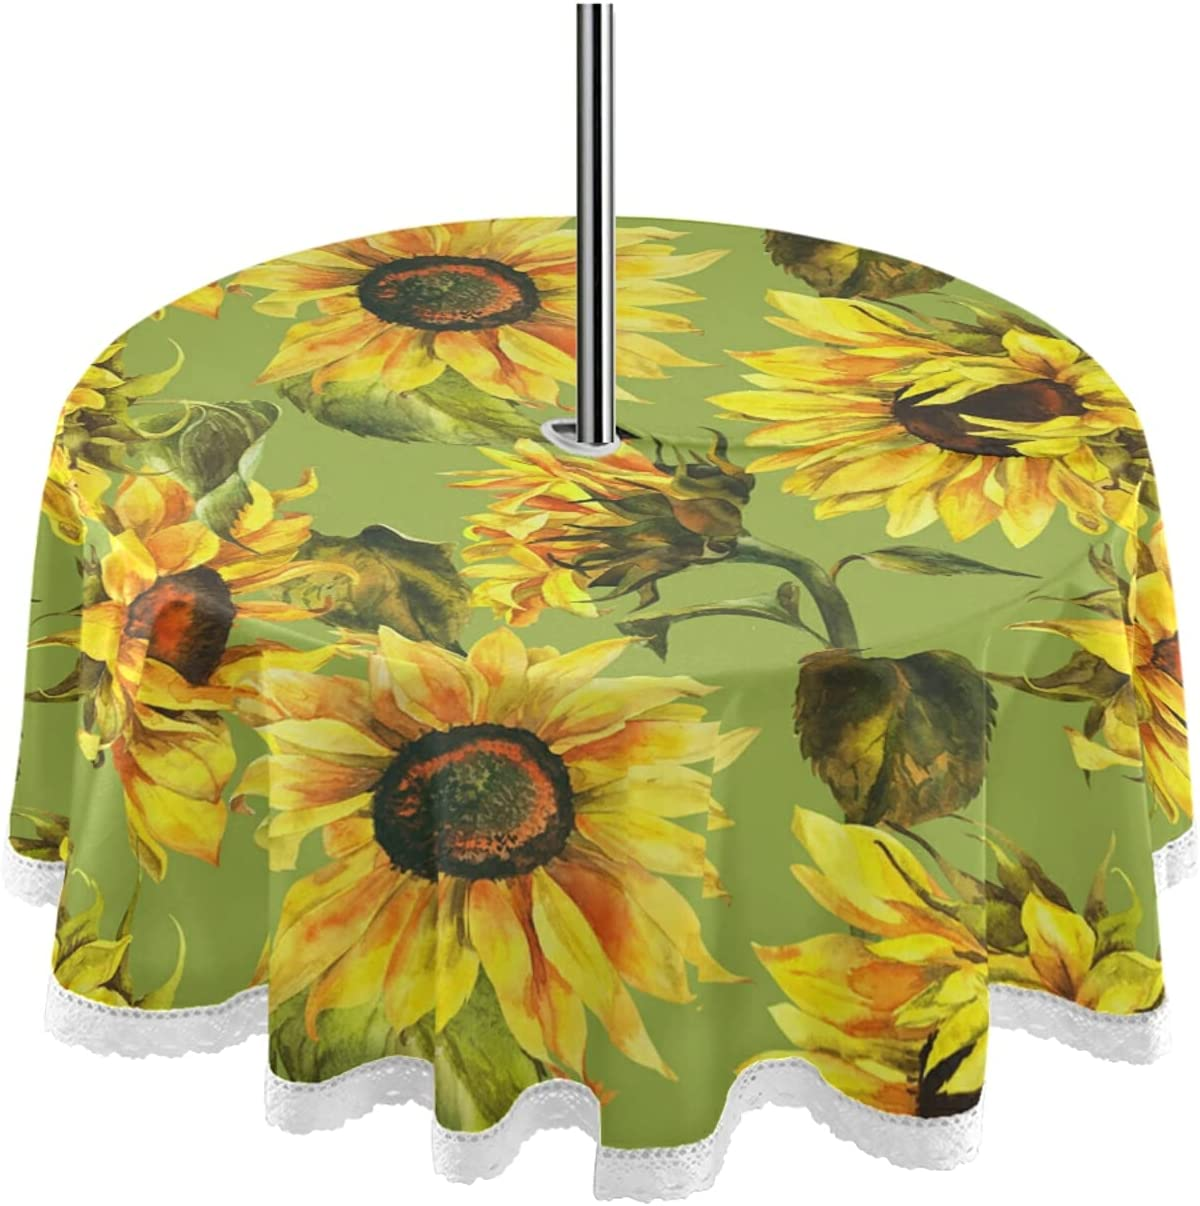 Trust Sunflowers 60inch Round Tablecloth with Max 72% OFF Umbrella Hole Zipper and